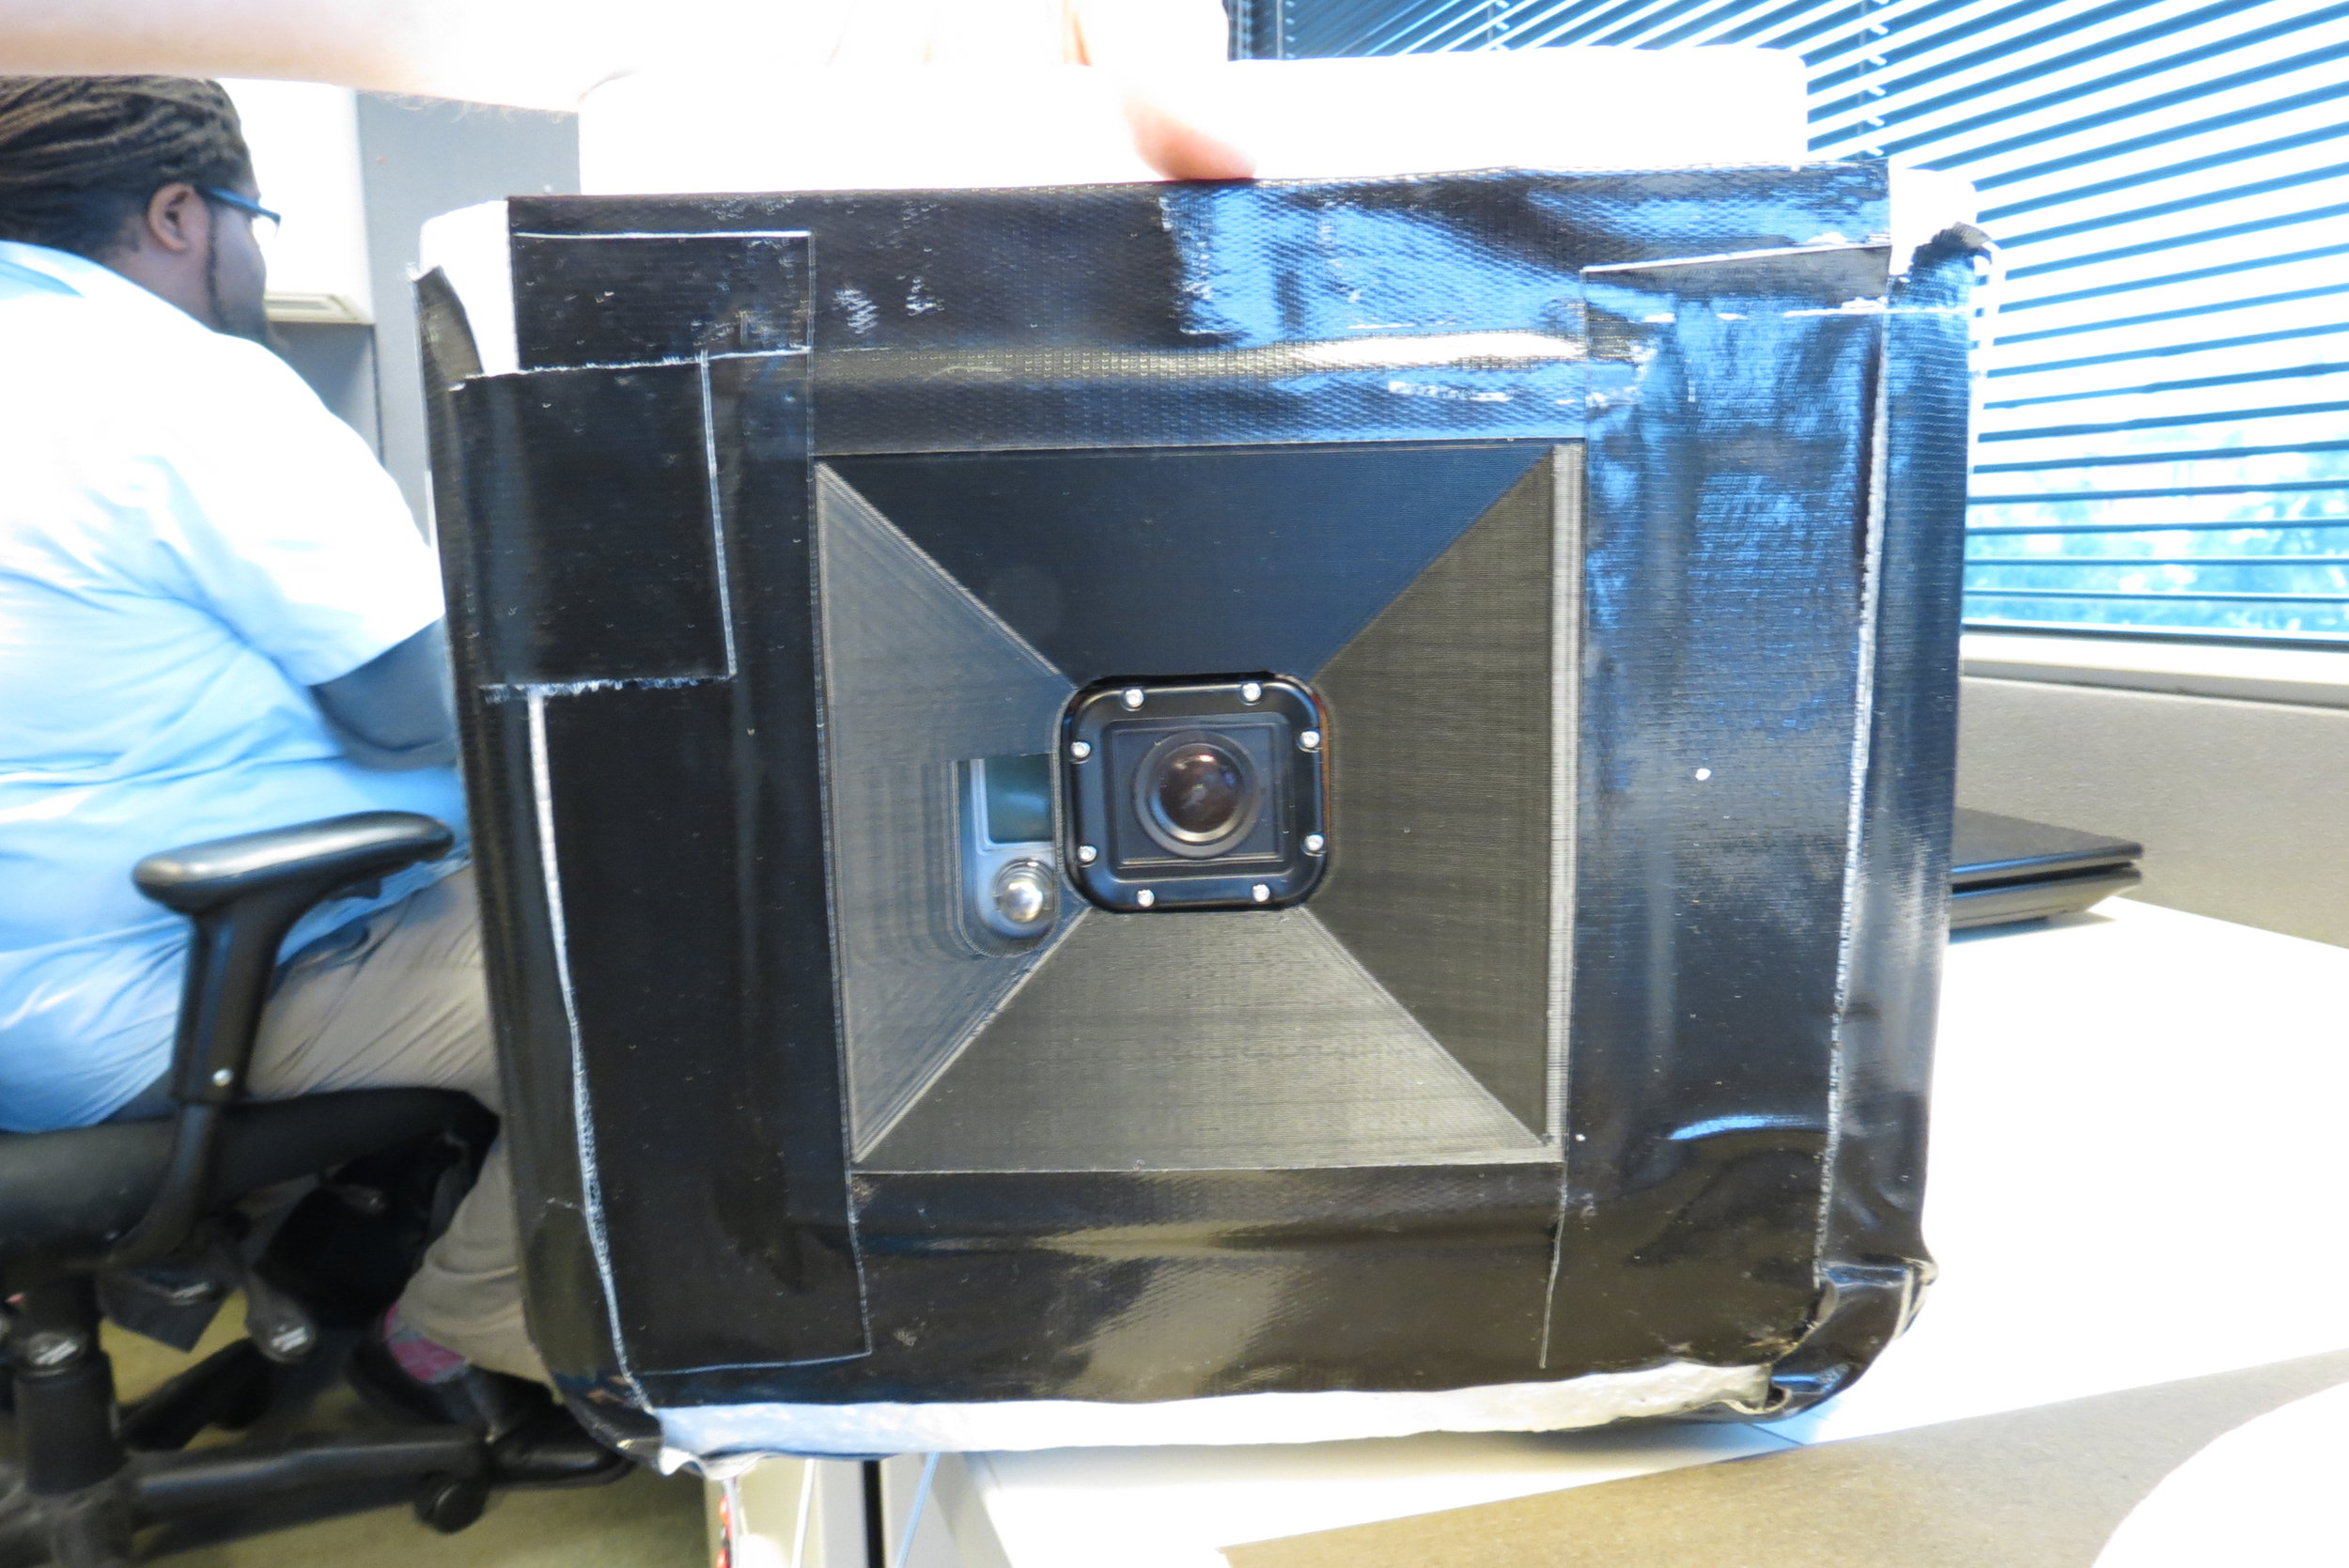 3D printed camera holder, glued and taped into side of foam cooler.